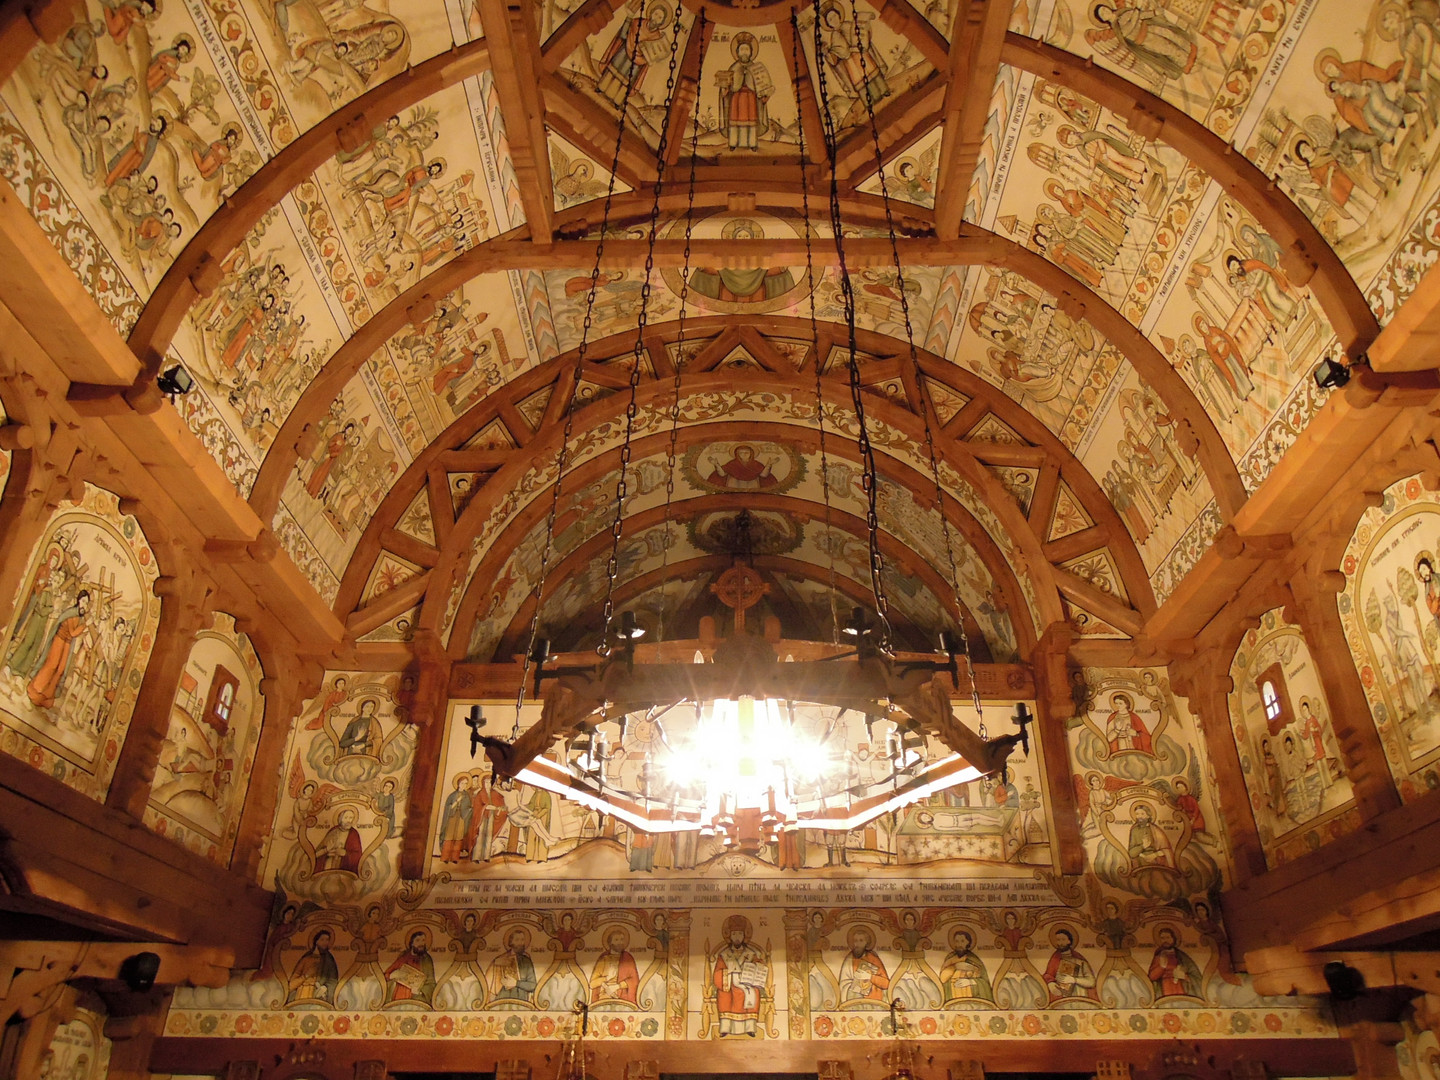 Frescoes inside a wooden church